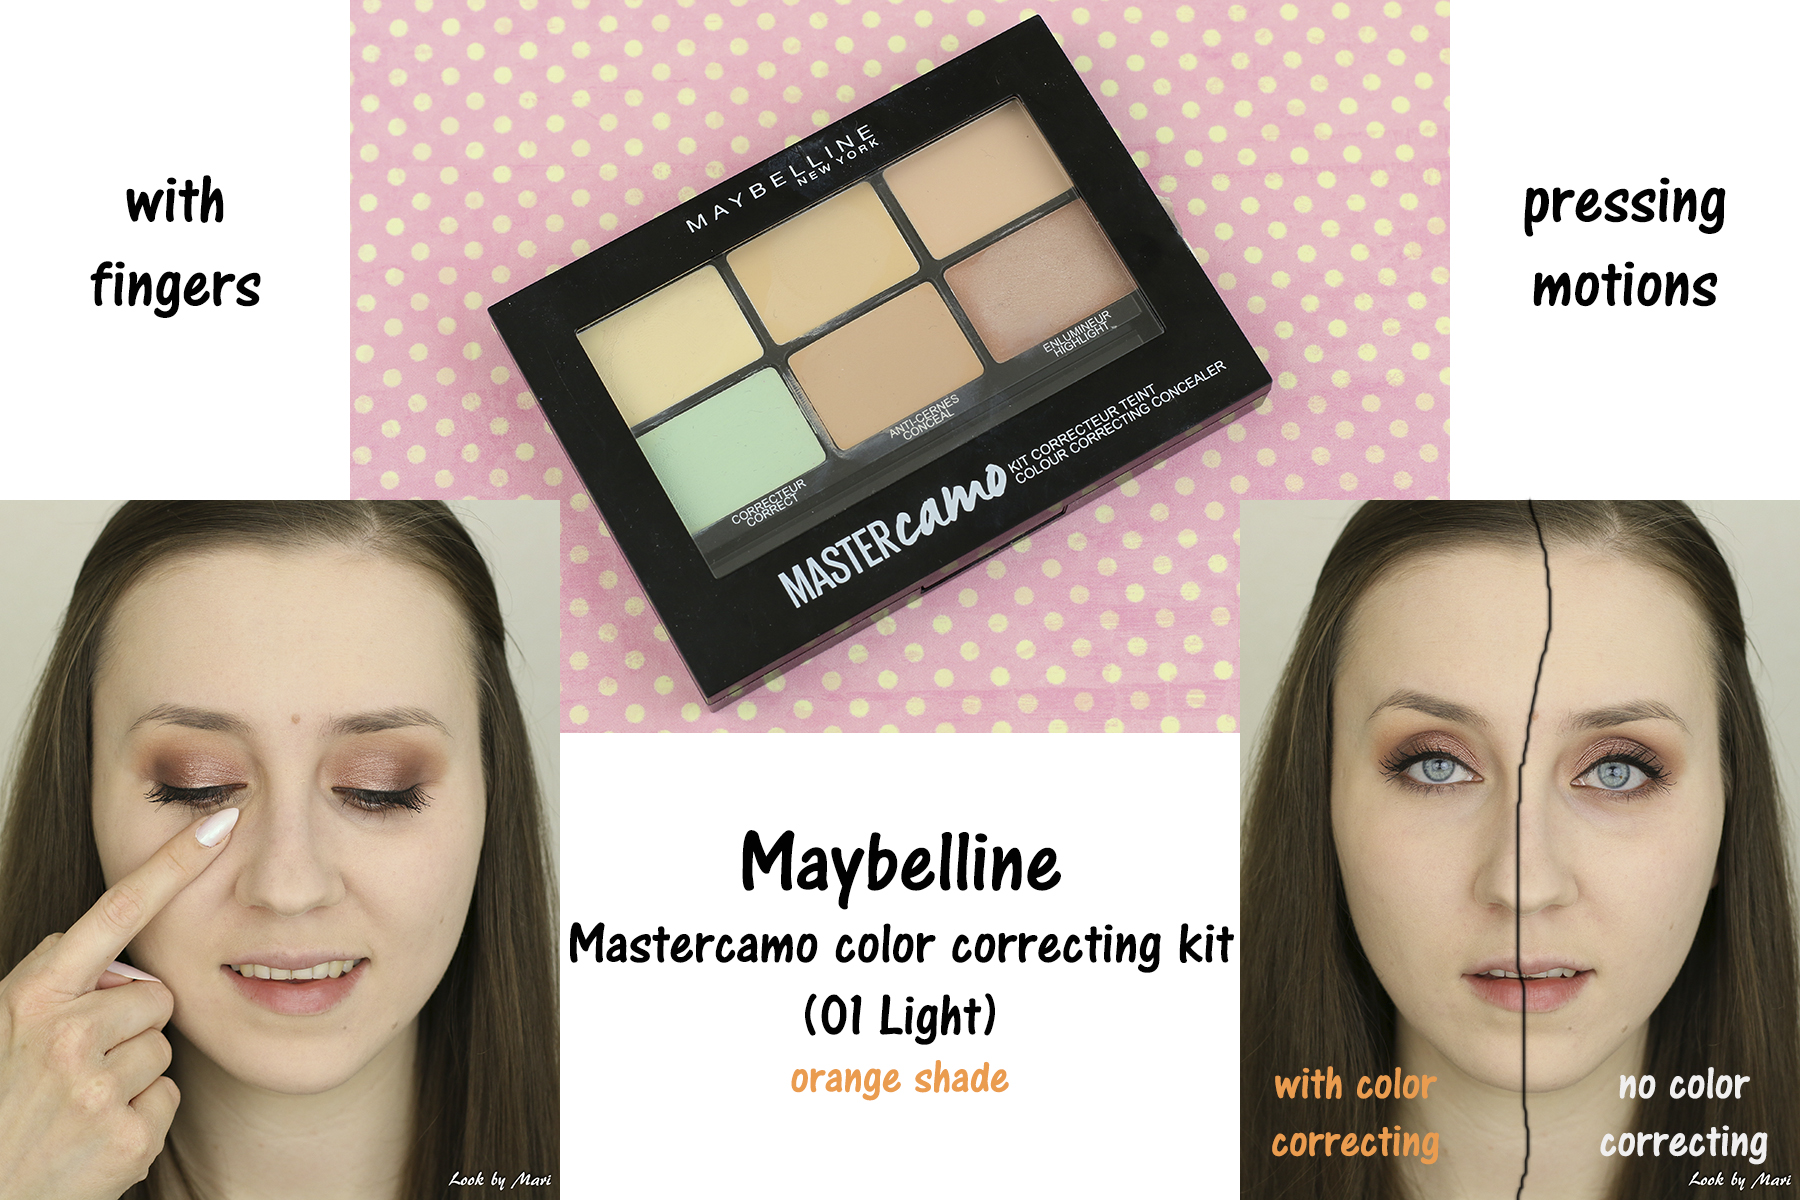 10 color correcting under the eyes maybelline drug store tutorial how to do